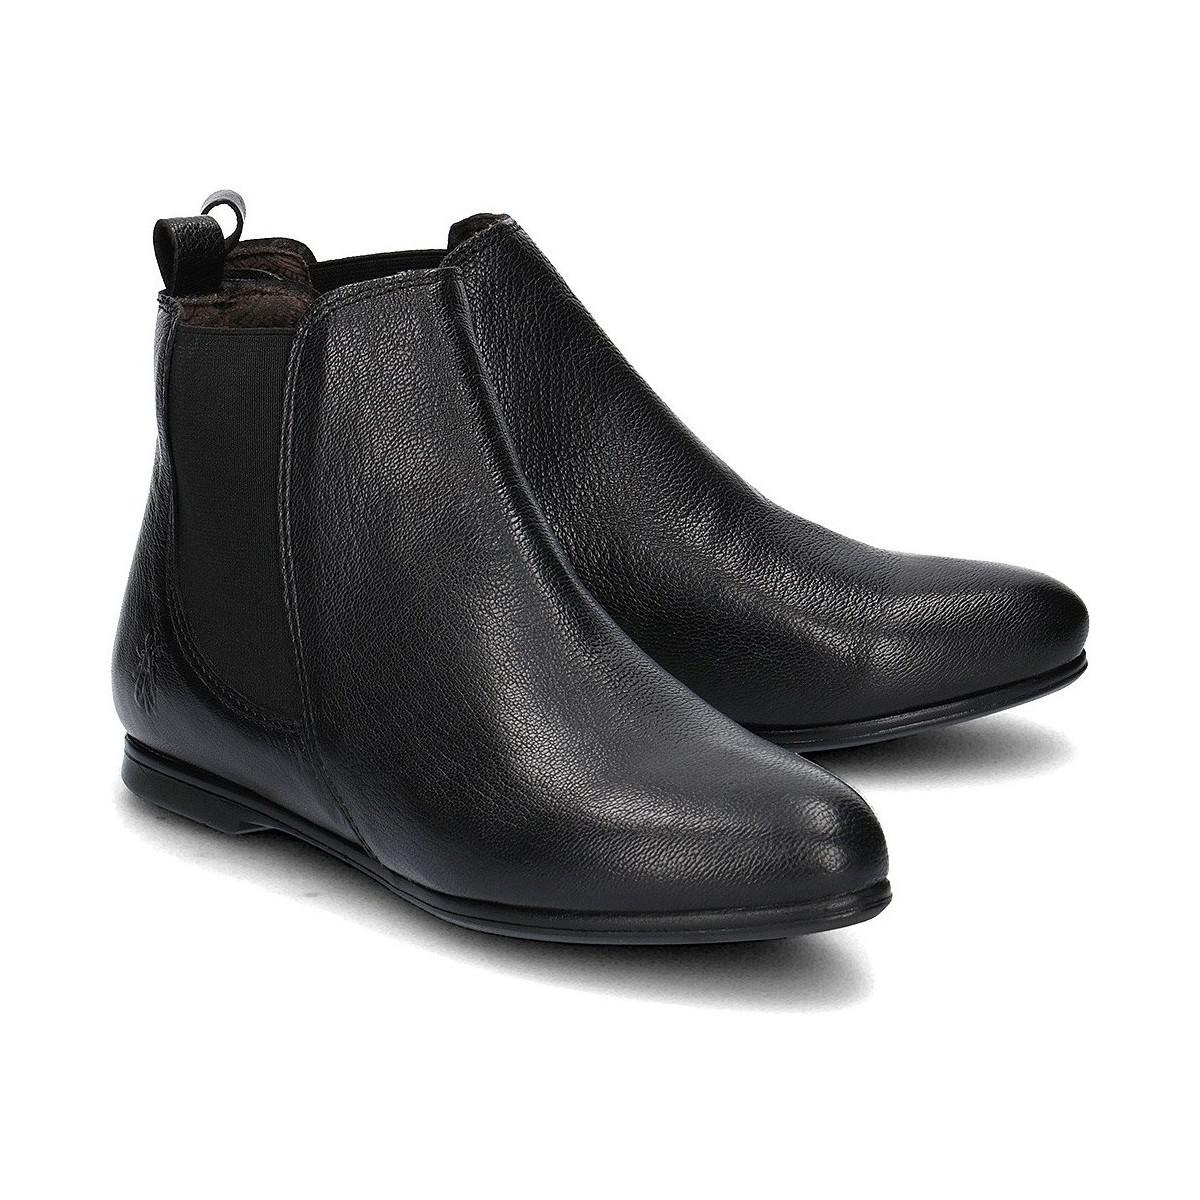 New Styles Fly London Acid women's Low Ankle Boots in Sneakernews Cheap Online Sale Deals With Mastercard Online zUe2jV